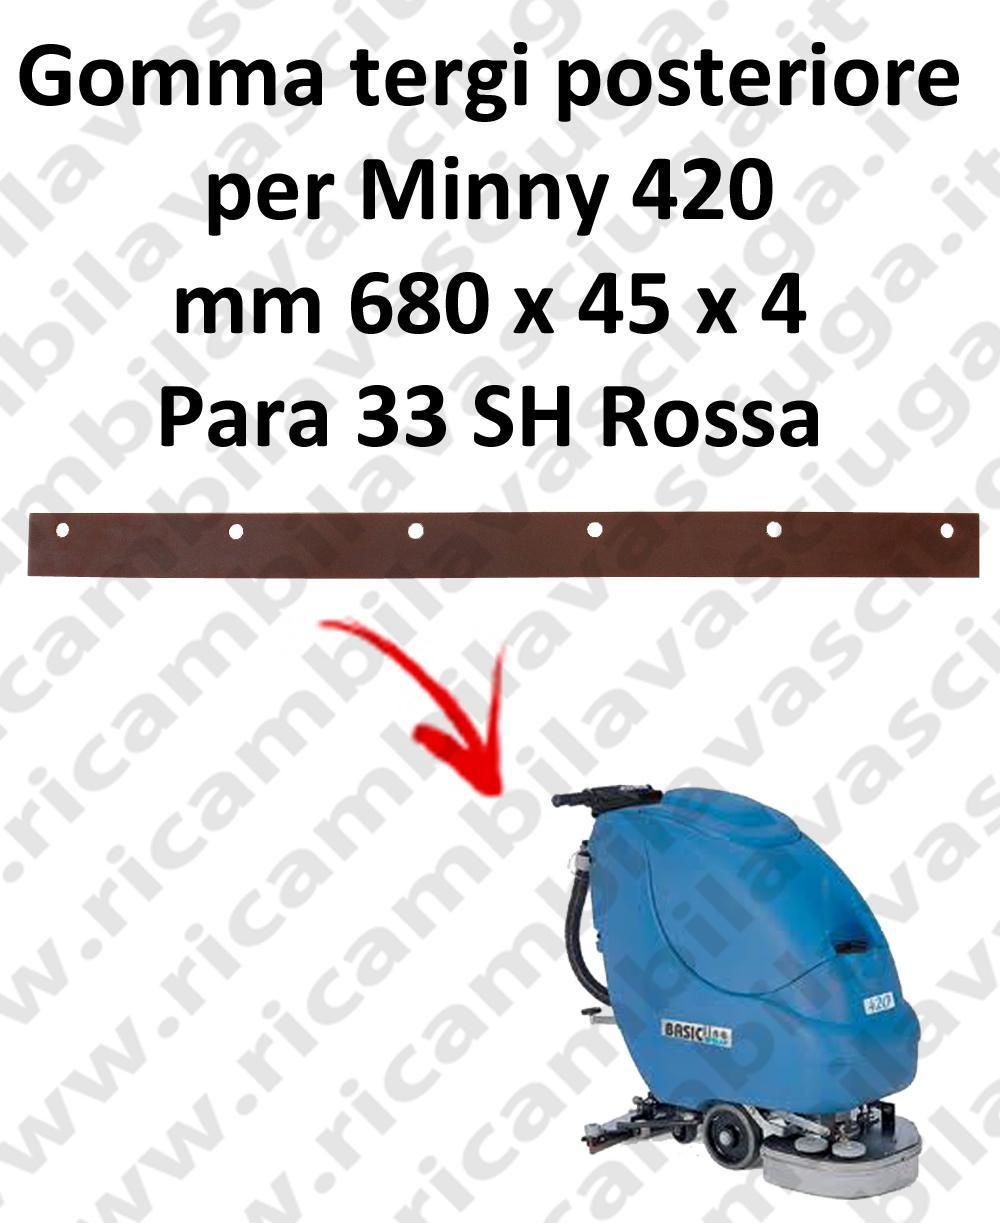 MINNY 420  Back Squeegee rubber for FIMAP accessories, reaplacement, spare parts,o scrubber dryer squeegee